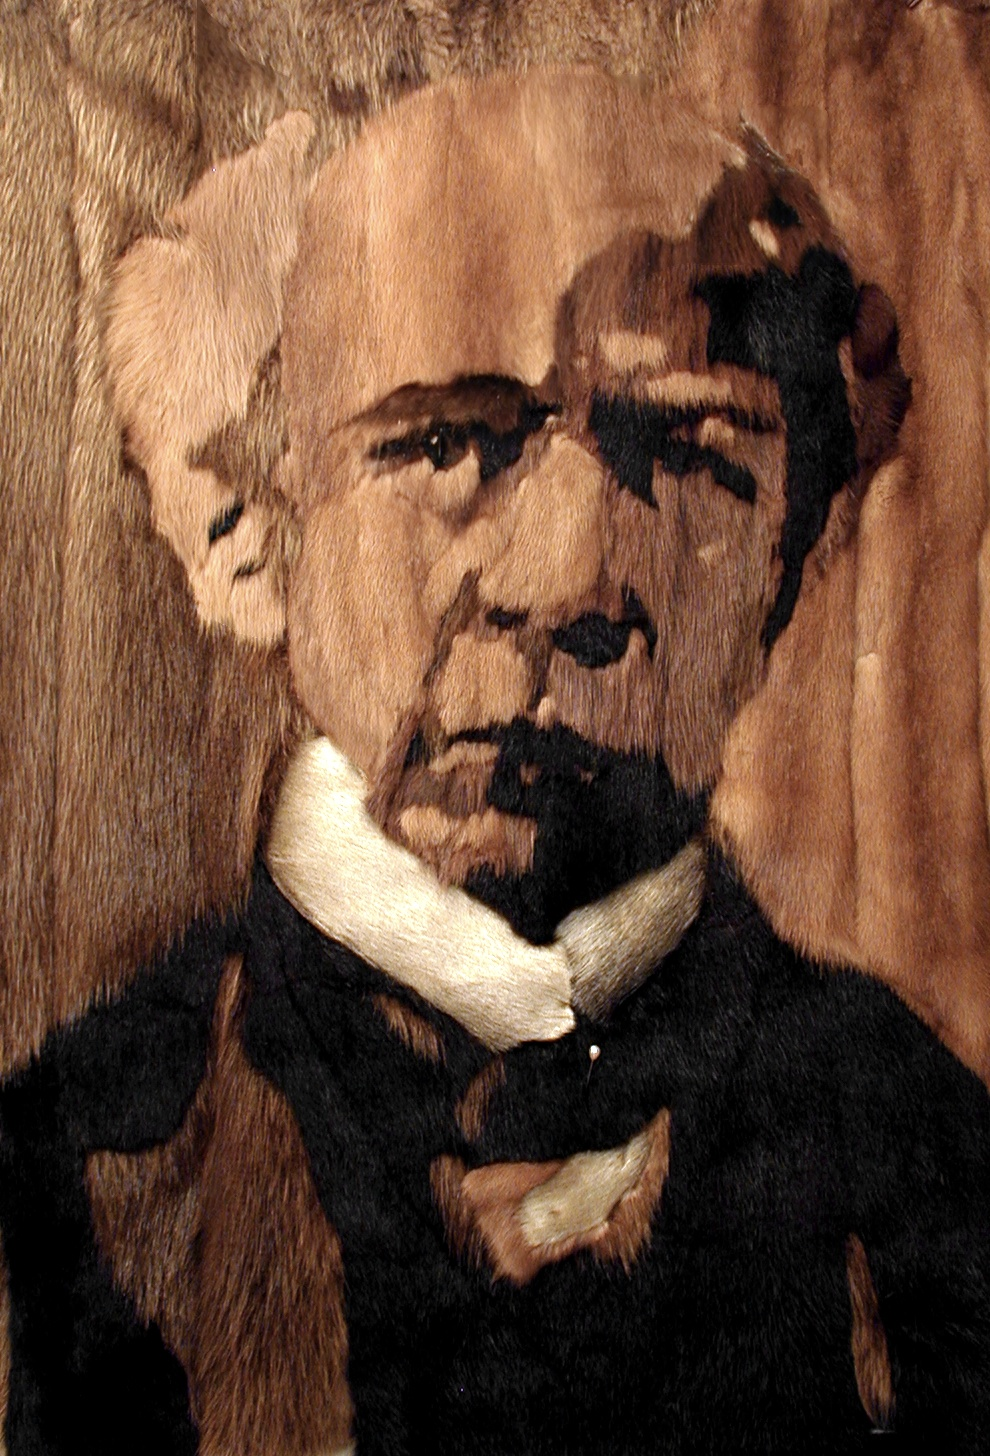 Fourrure Wilfred Laurier